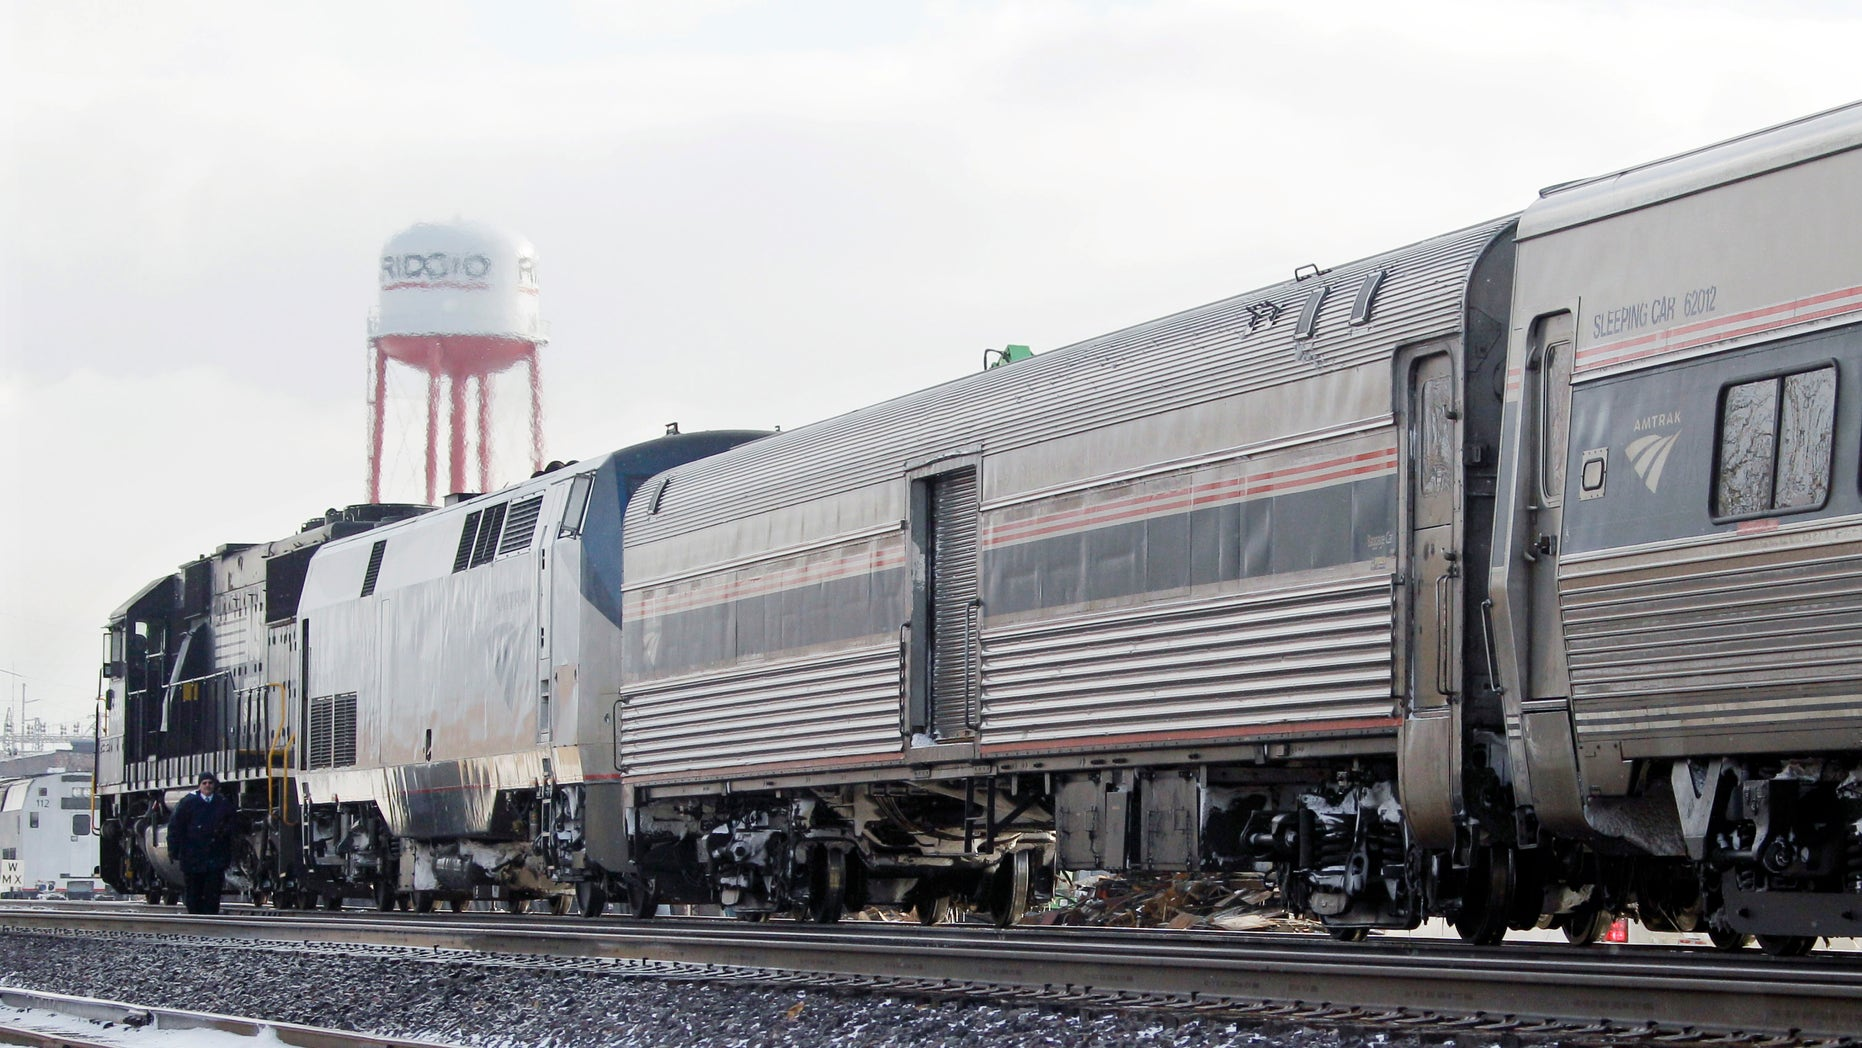 Dec. 15: A Norfolk and Southern engine hooked to an Amtrak passenger train waits on a siding in Elyria, Ohio. The lead engine of the Chicago-to-New York Lake Shore Limited Amtrak train caught fire earlier in the morning forcing evacuation of 128 passengers and three train crew.